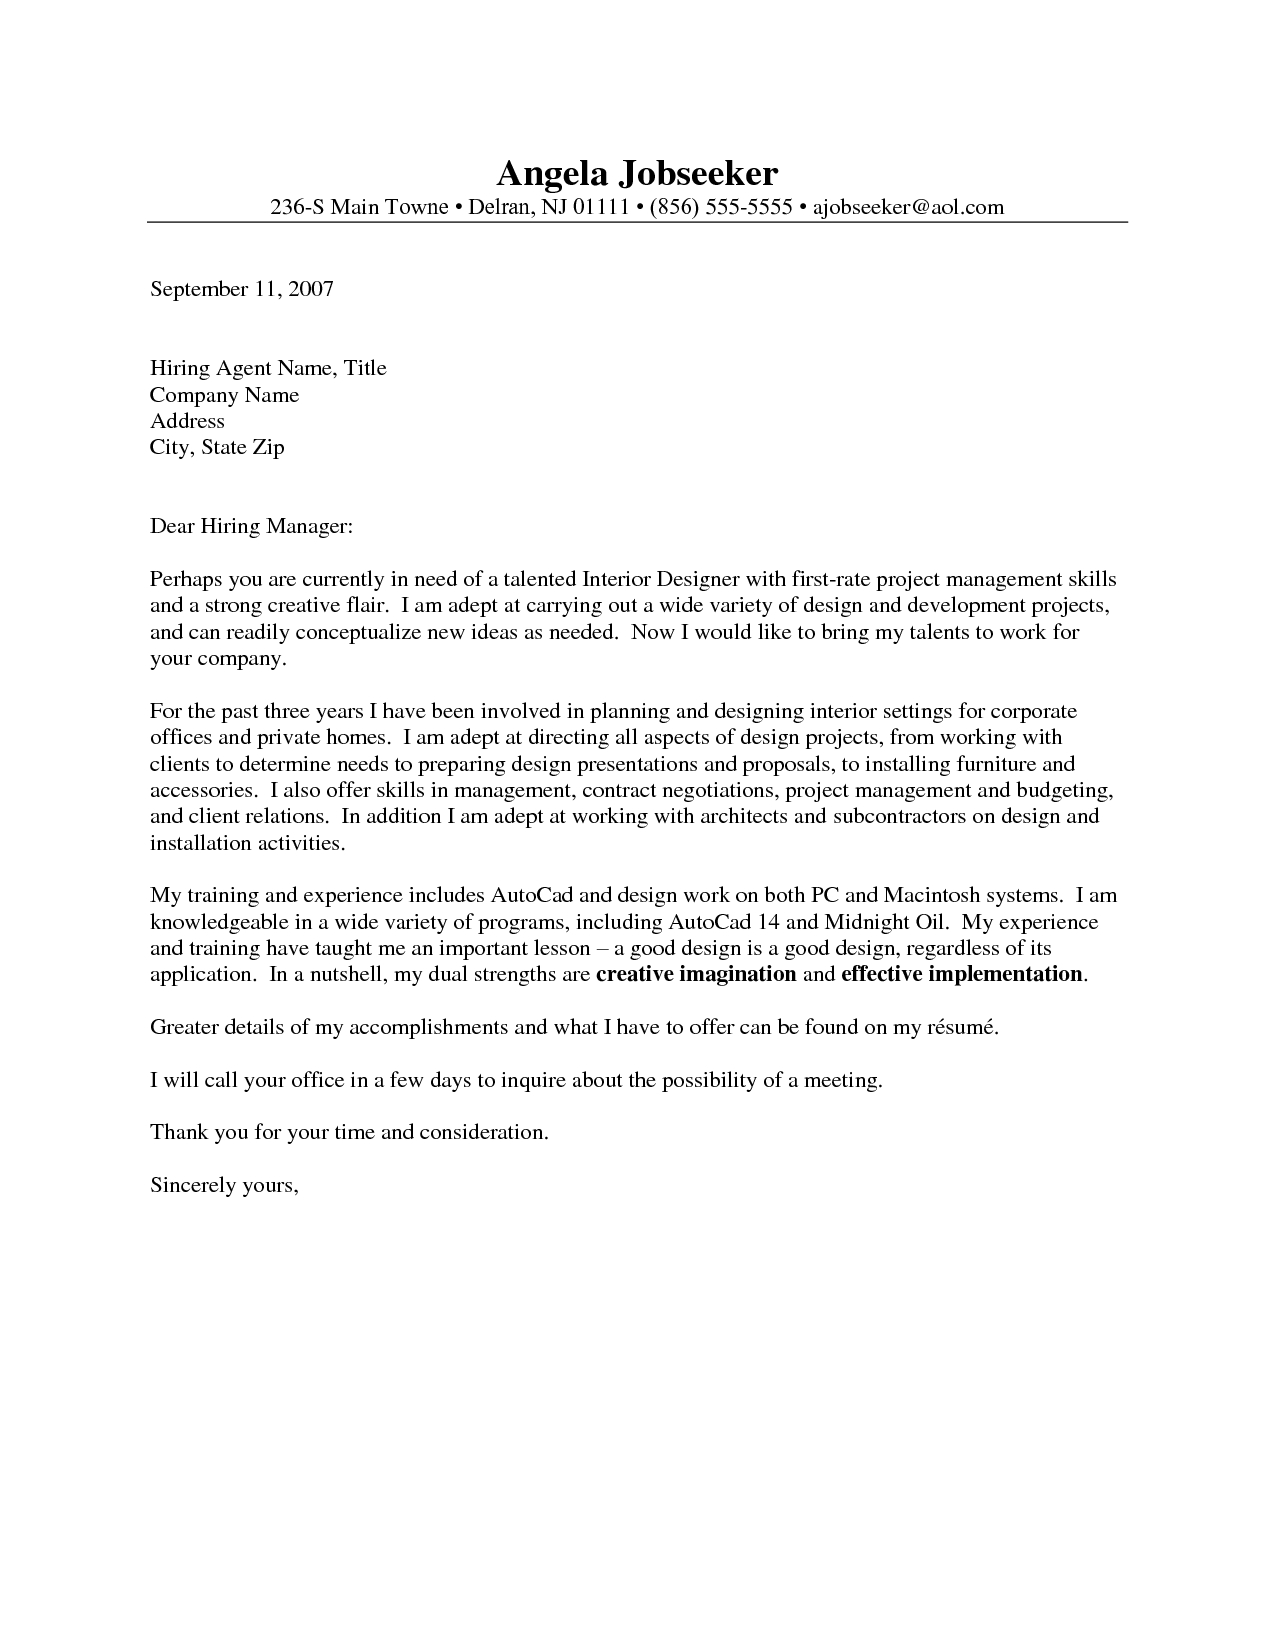 Mac Pages Cover Letter Template - Outstanding Cover Letter Examples